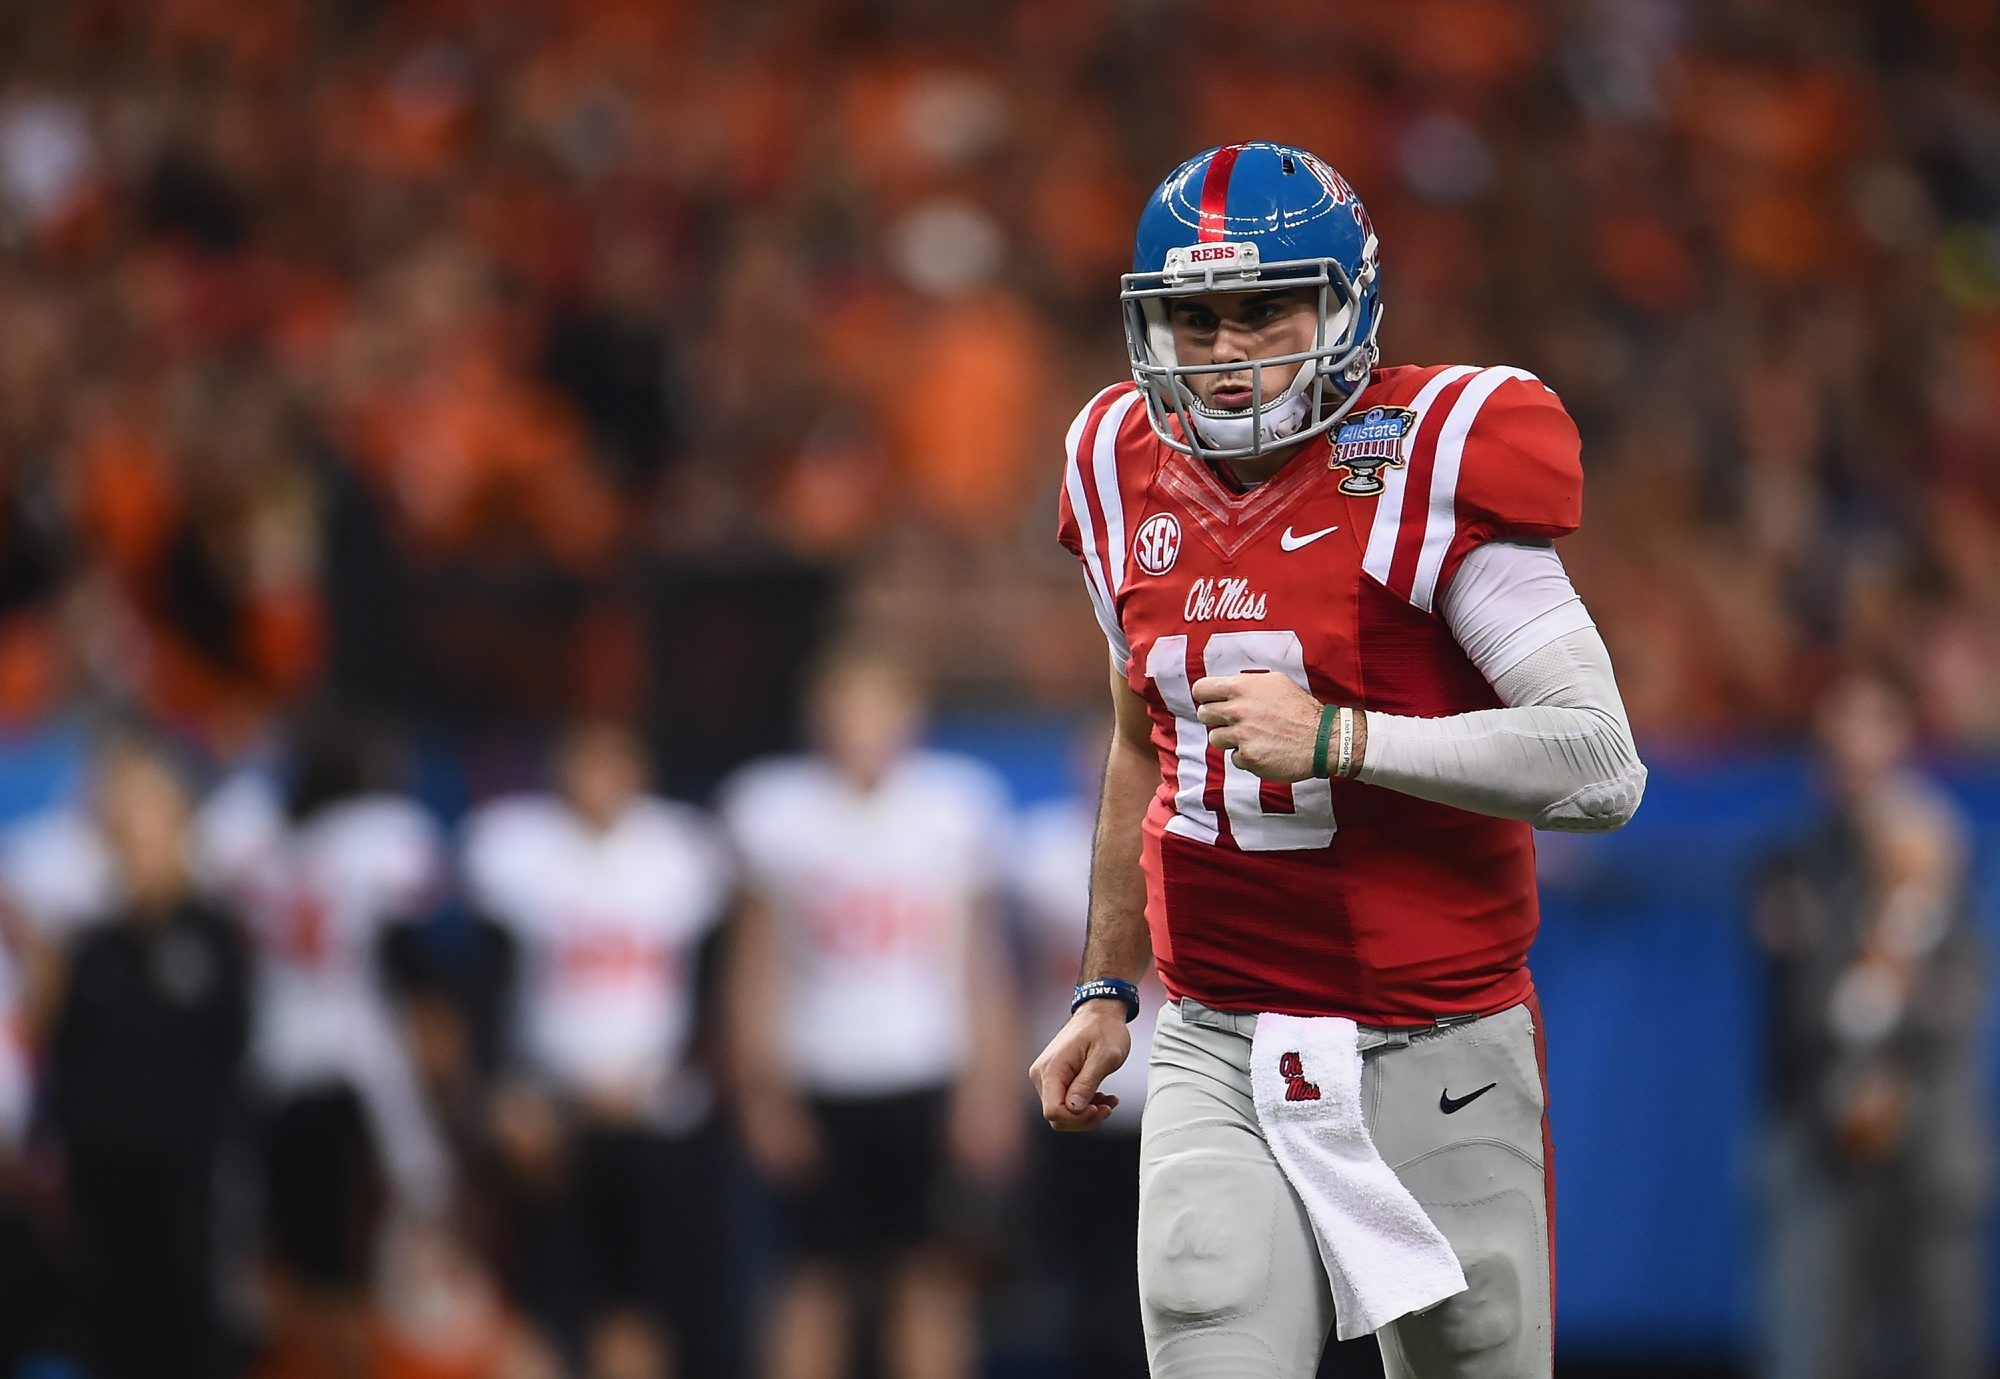 NEW ORLEANS, LA - JANUARY 01:  Quarterback Chad Kelly #10 of the Mississippi Rebels is seen during the third quarter against the Oklahoma State Cowboys of the Allstate Sugar Bowl at Mercedes-Benz Superdome on January 1, 2016 in New Orleans, Louisiana.  (Photo by Stacy Revere/Getty Images)